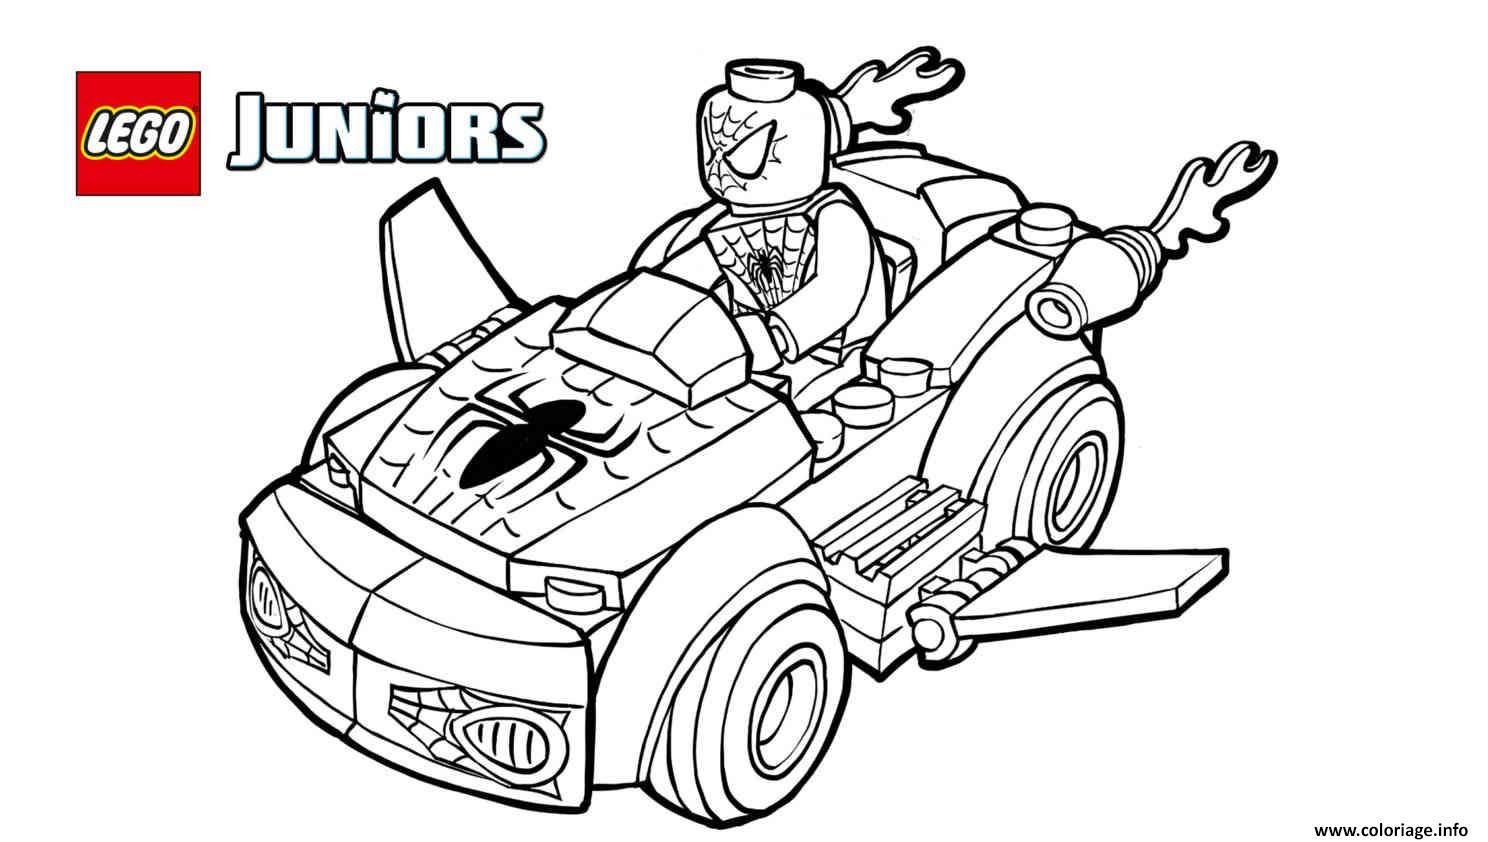 Coloriage Lego Spiderman 2 Voiture Lego Jecoloriecom